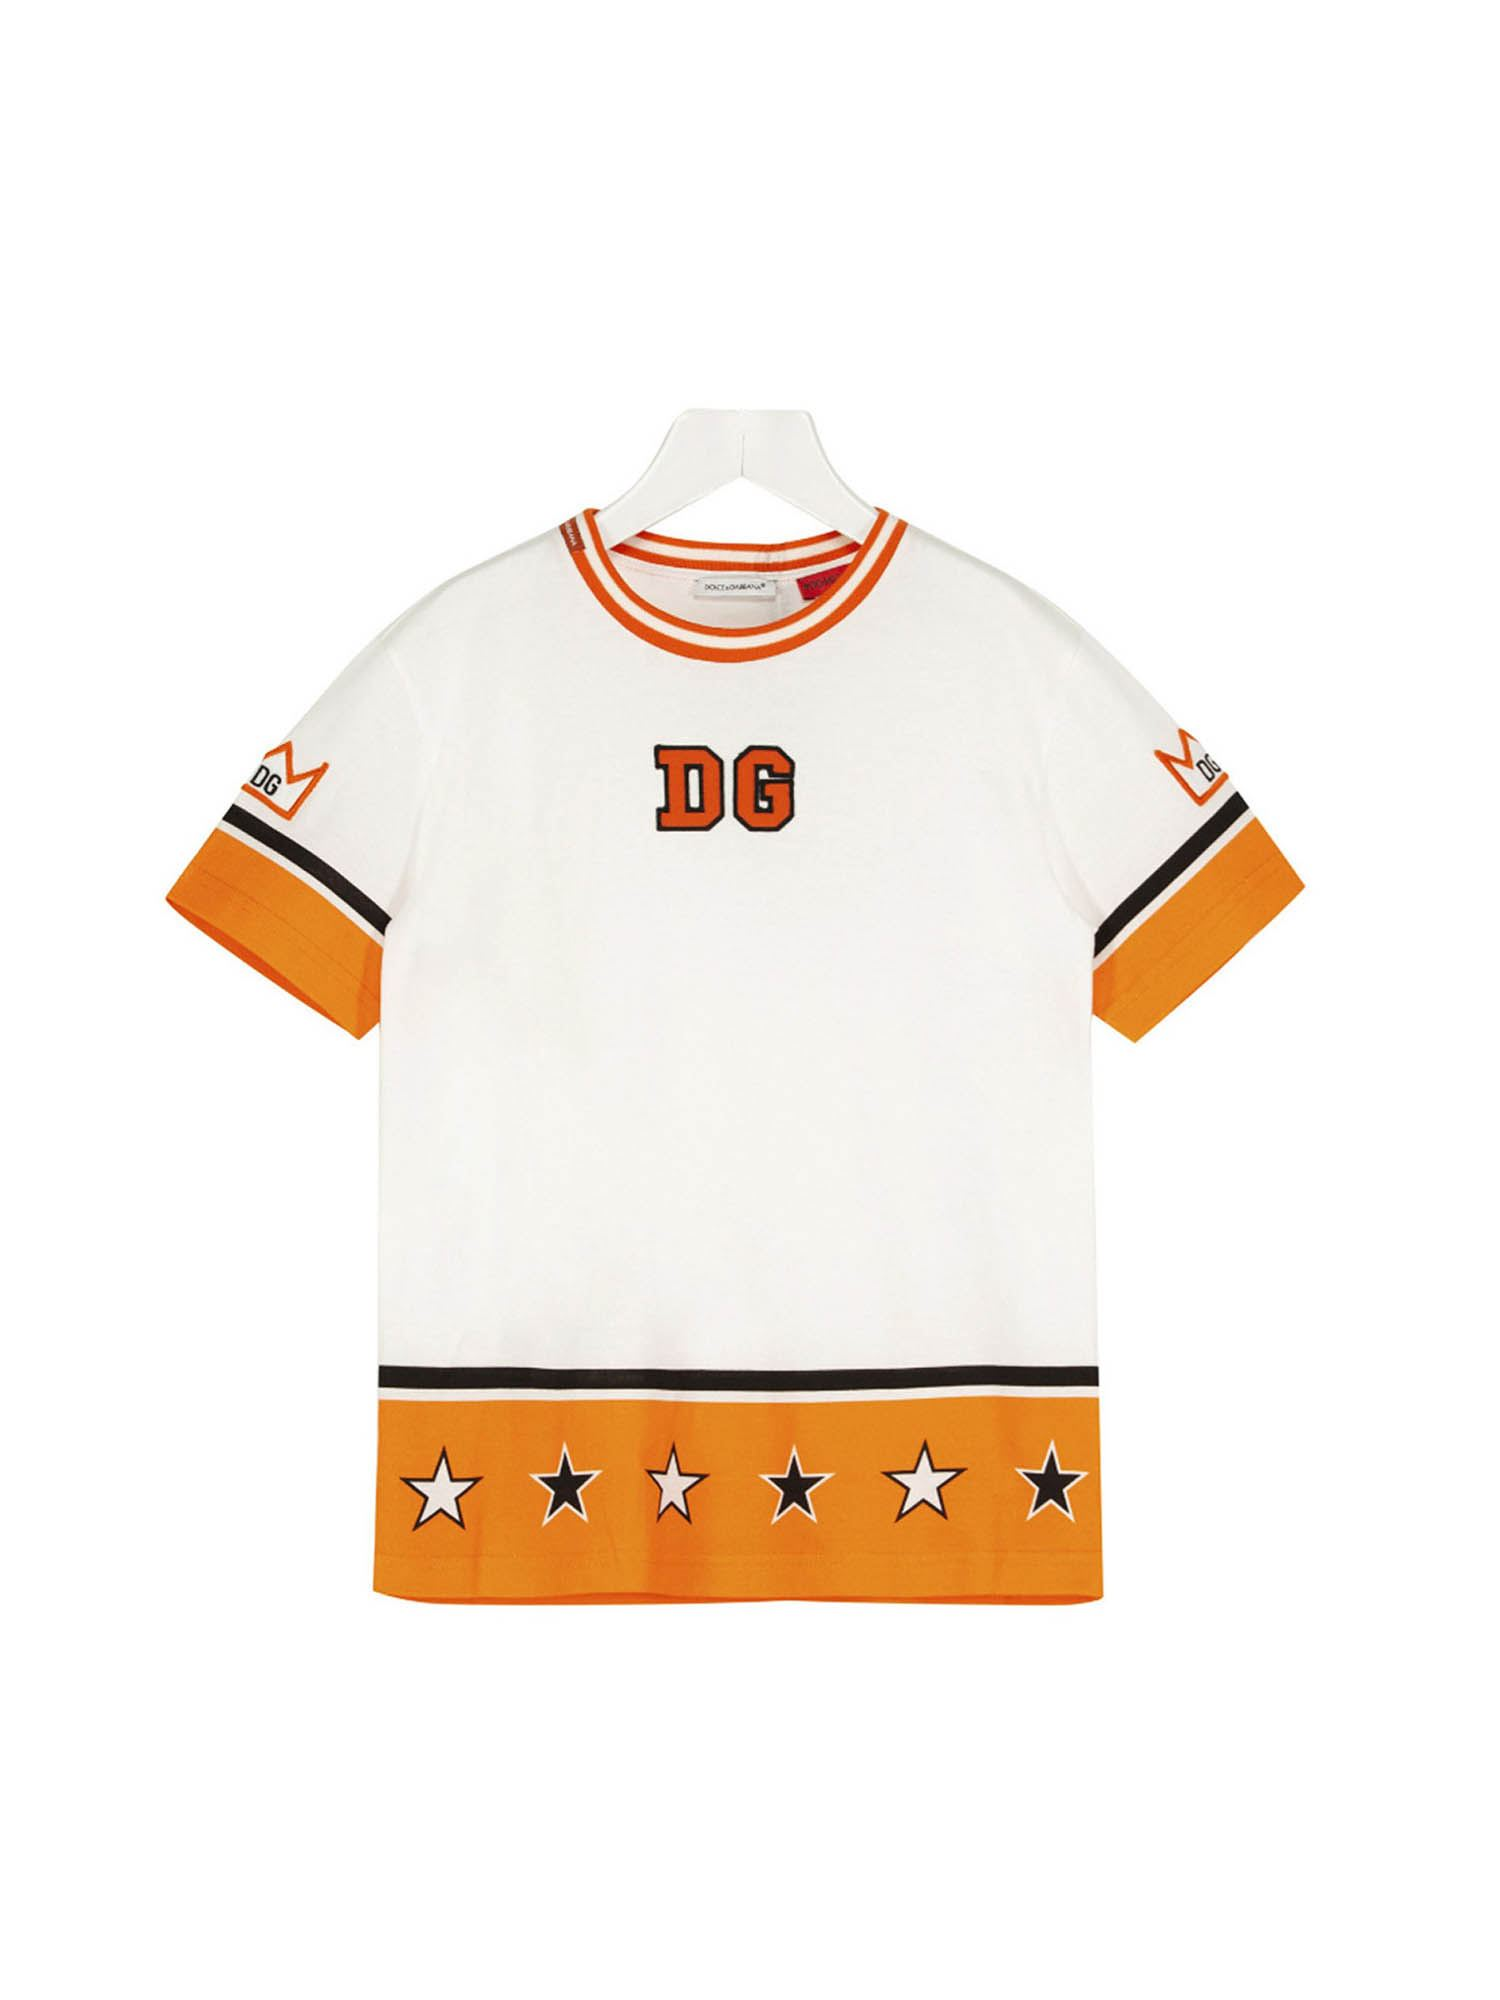 Dolce & Gabbana Jr Cottons DG ROYALS T-SHIRT IN WHITE AND YELLOW